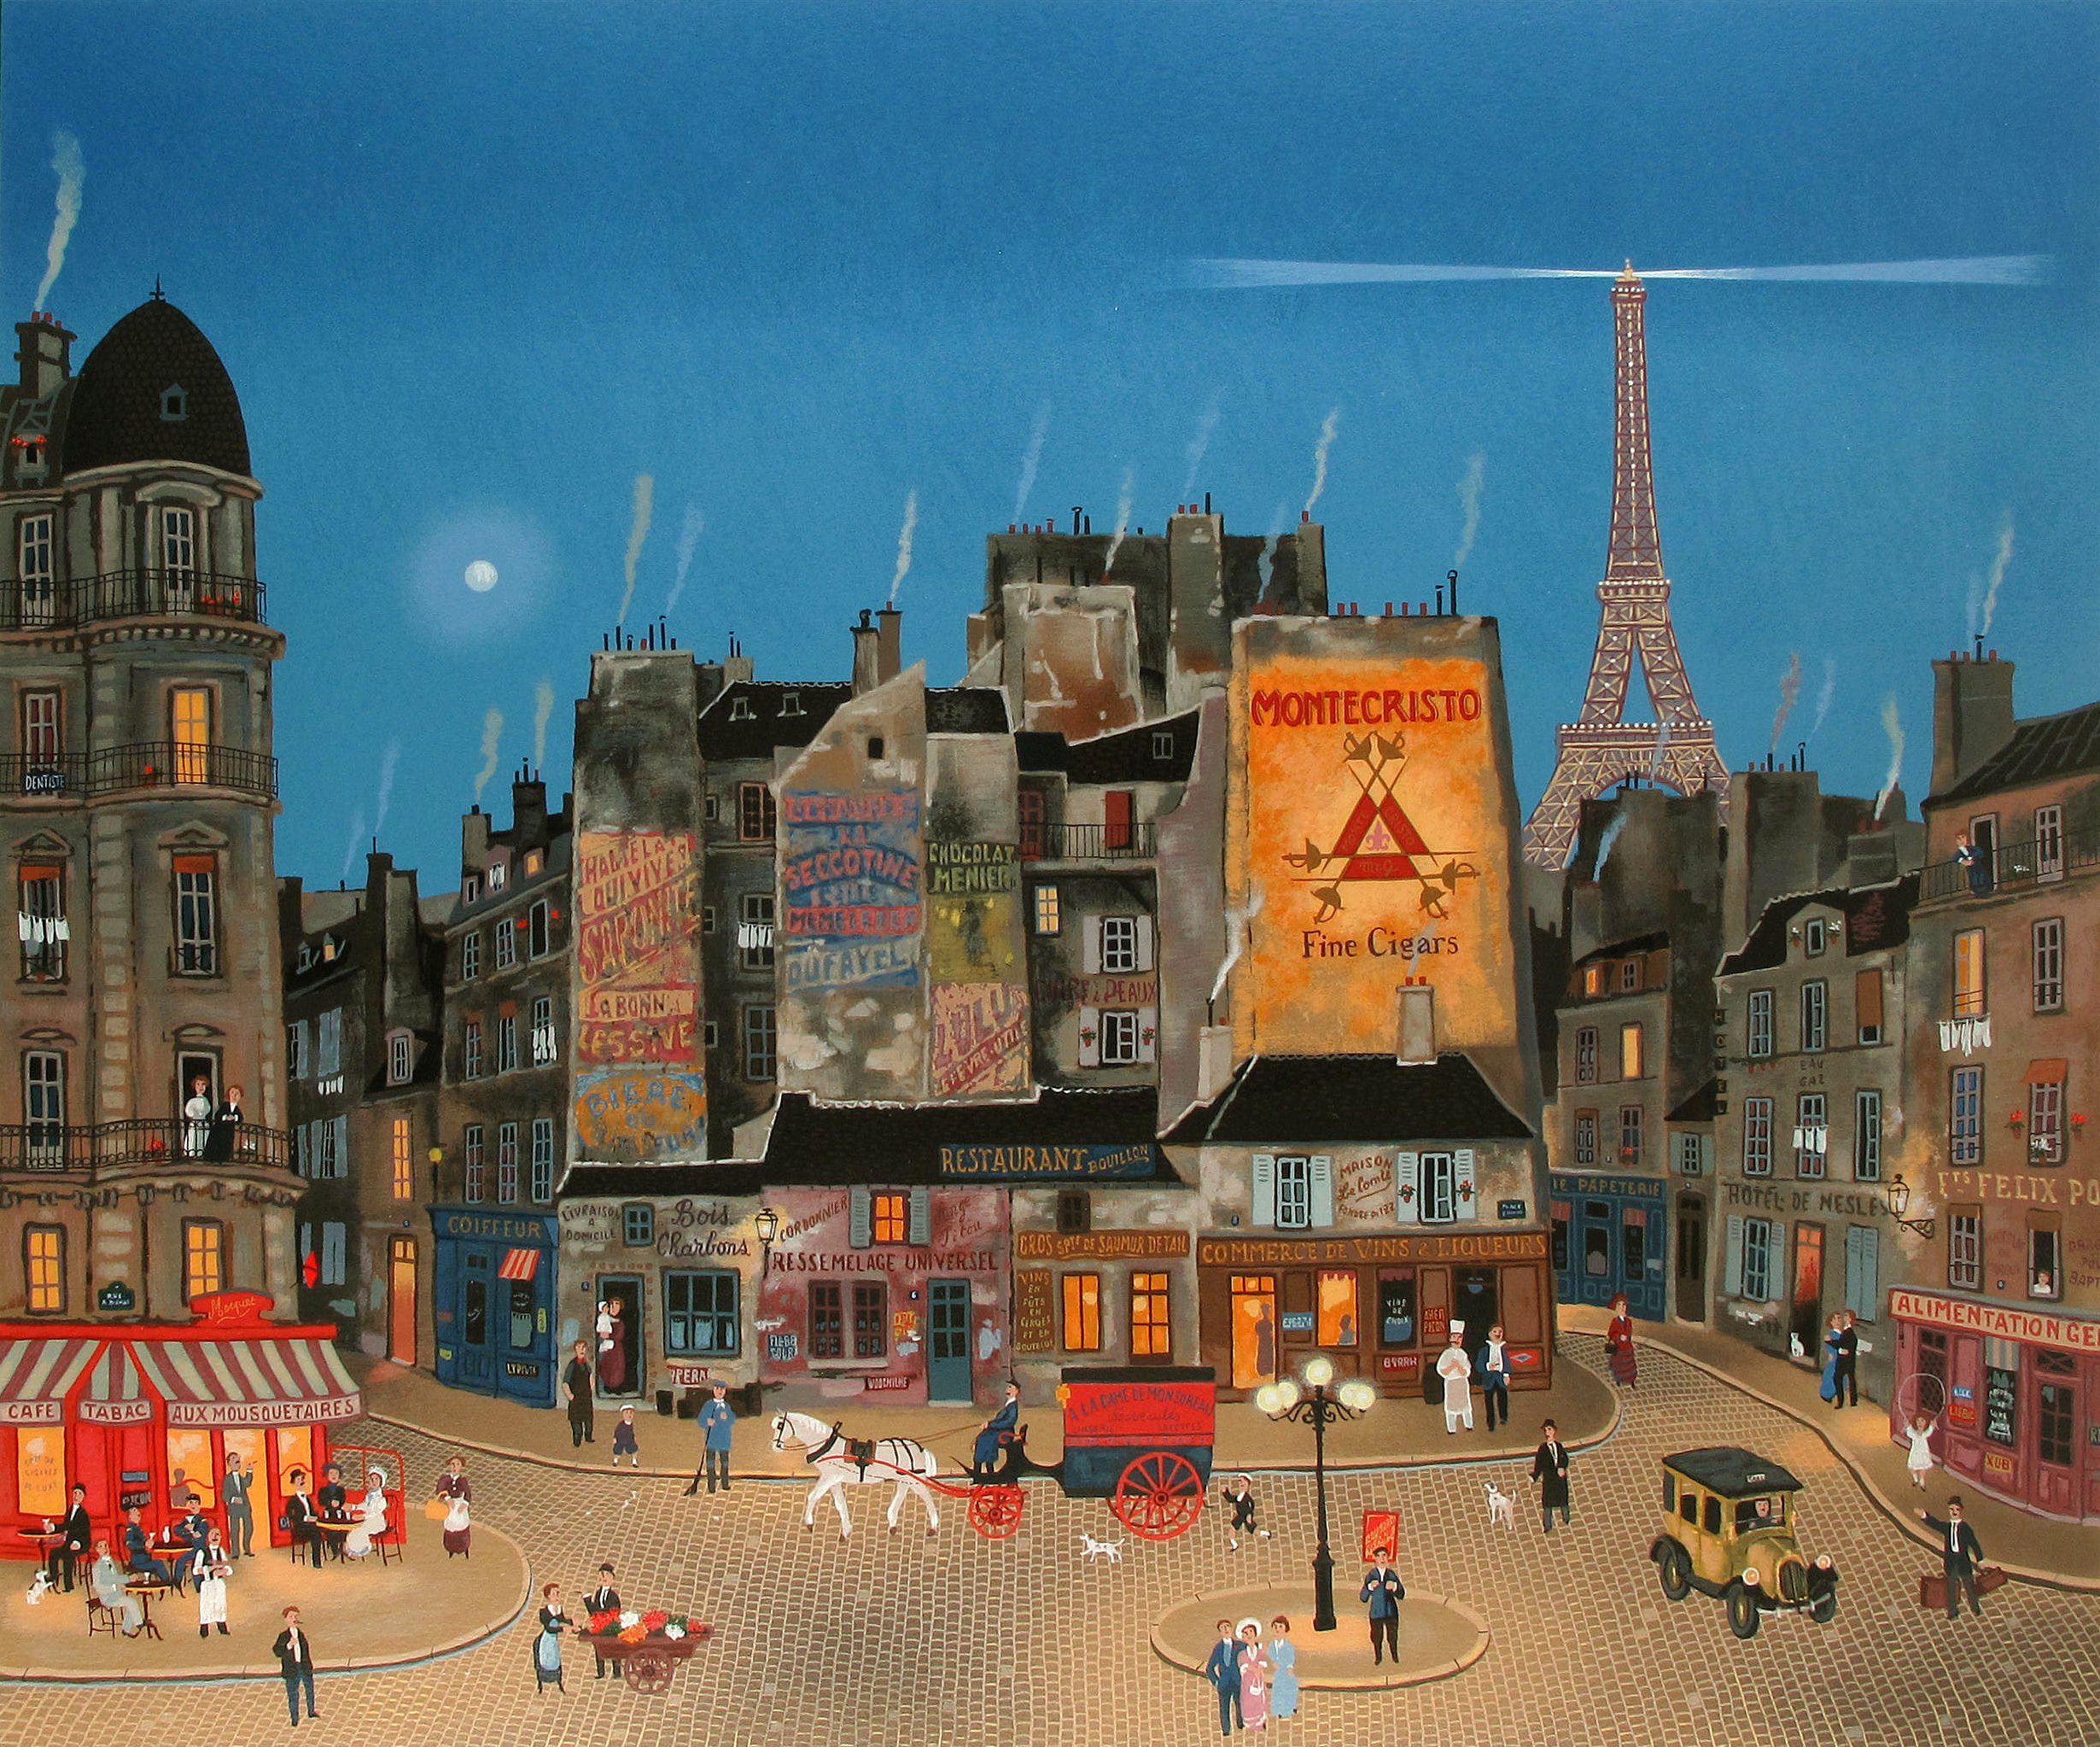 Example of a limited edition serigraph Andreas Engel produced for artist Michel Delacroix